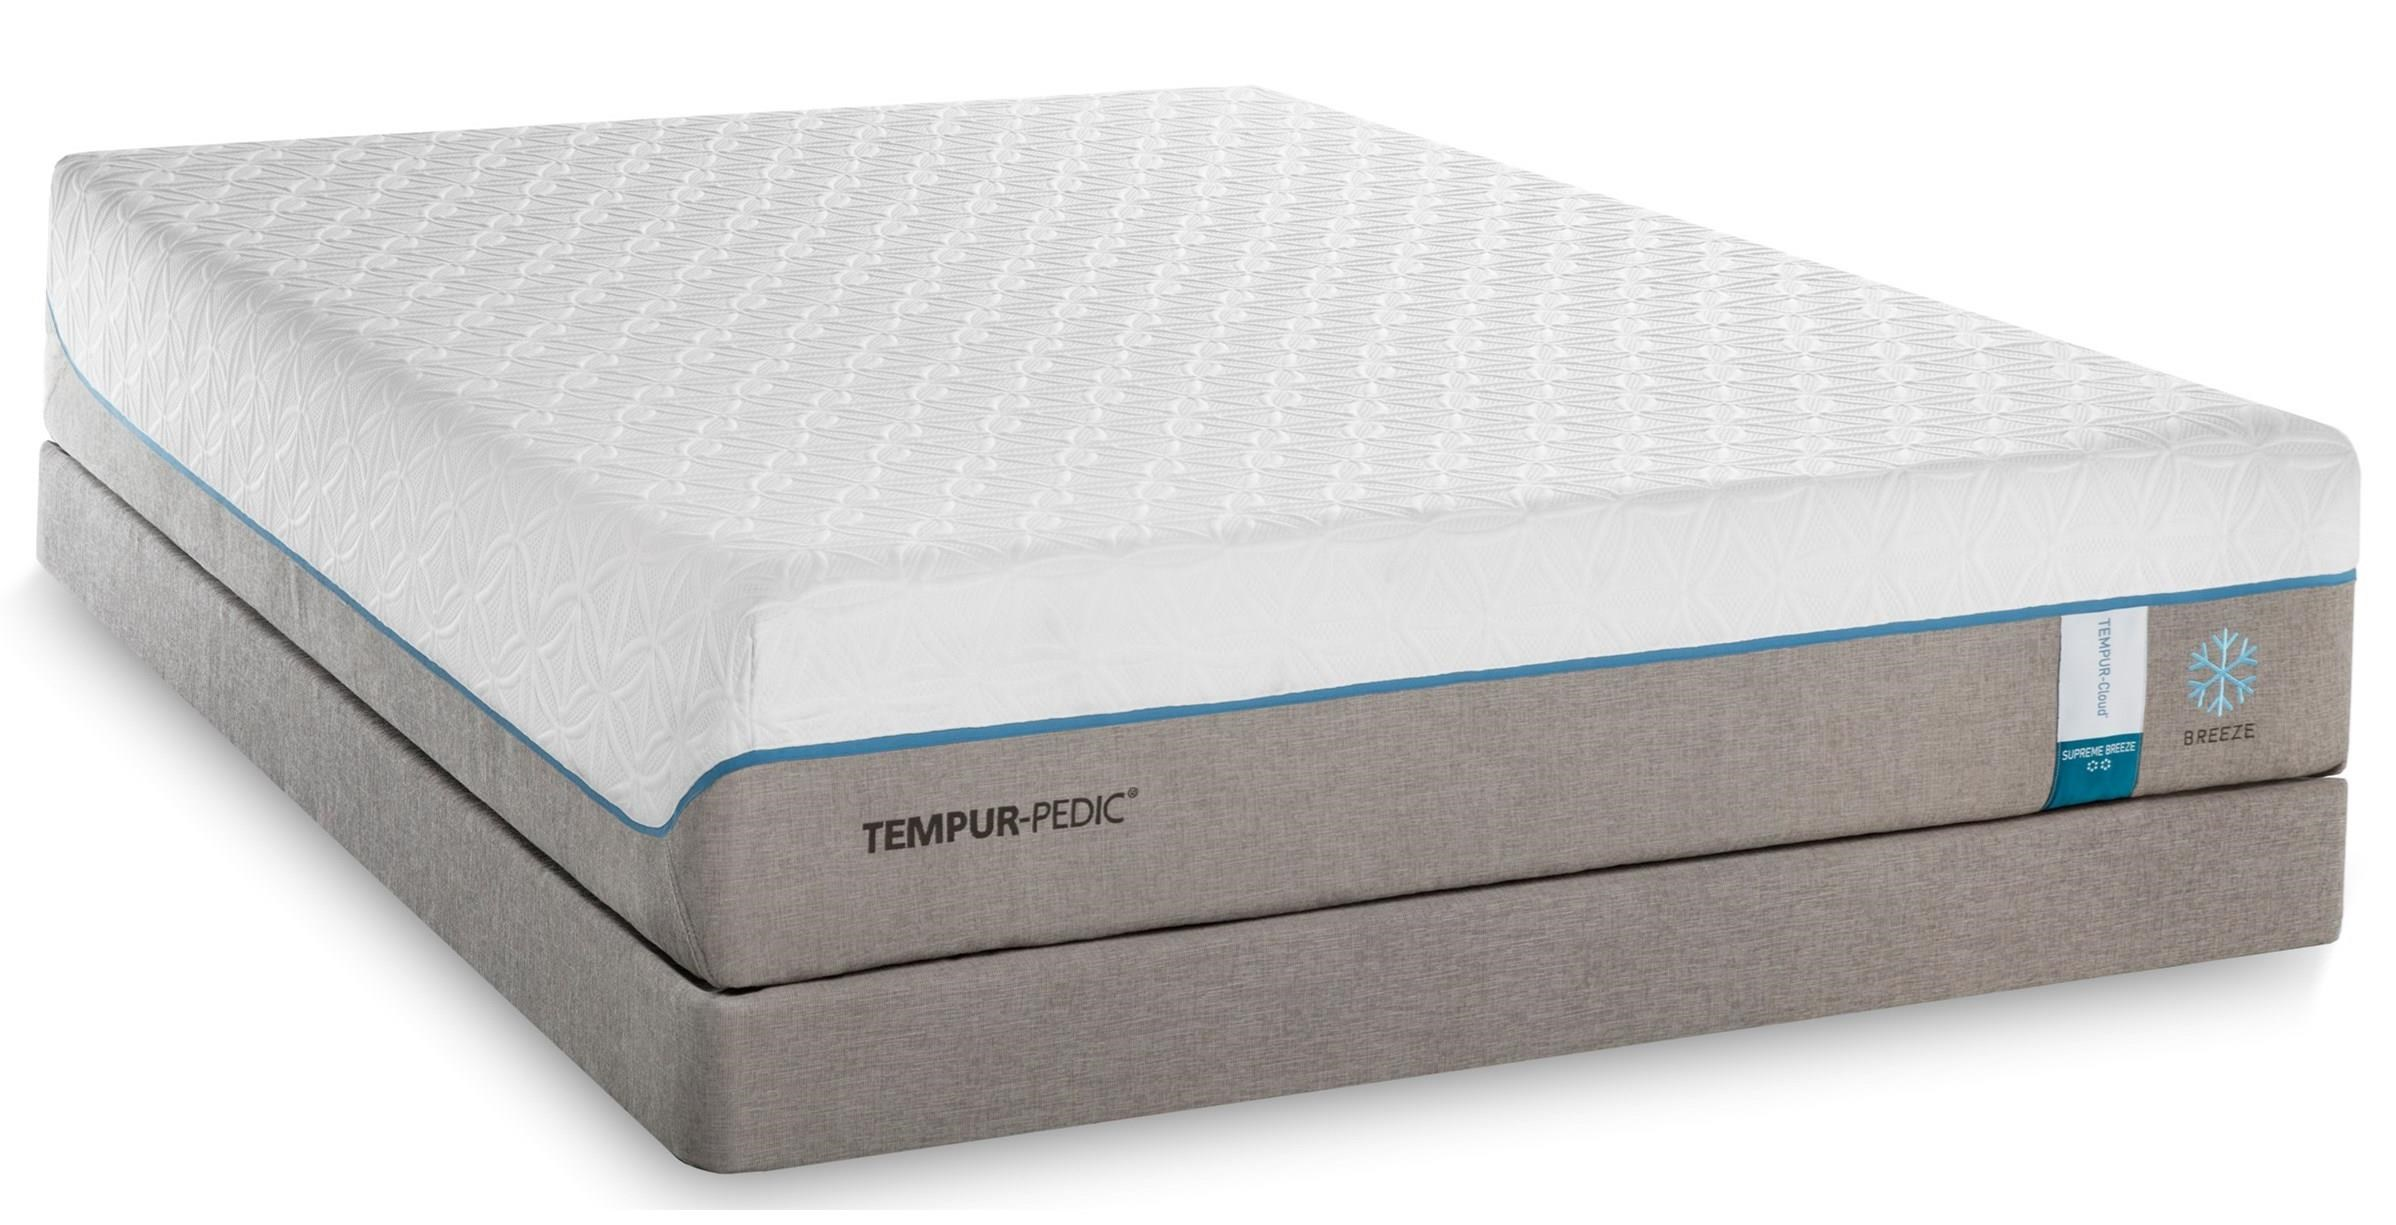 queen soft mattress and grey high profile foundation by tempur pedic wolf and gardiner wolf. Black Bedroom Furniture Sets. Home Design Ideas